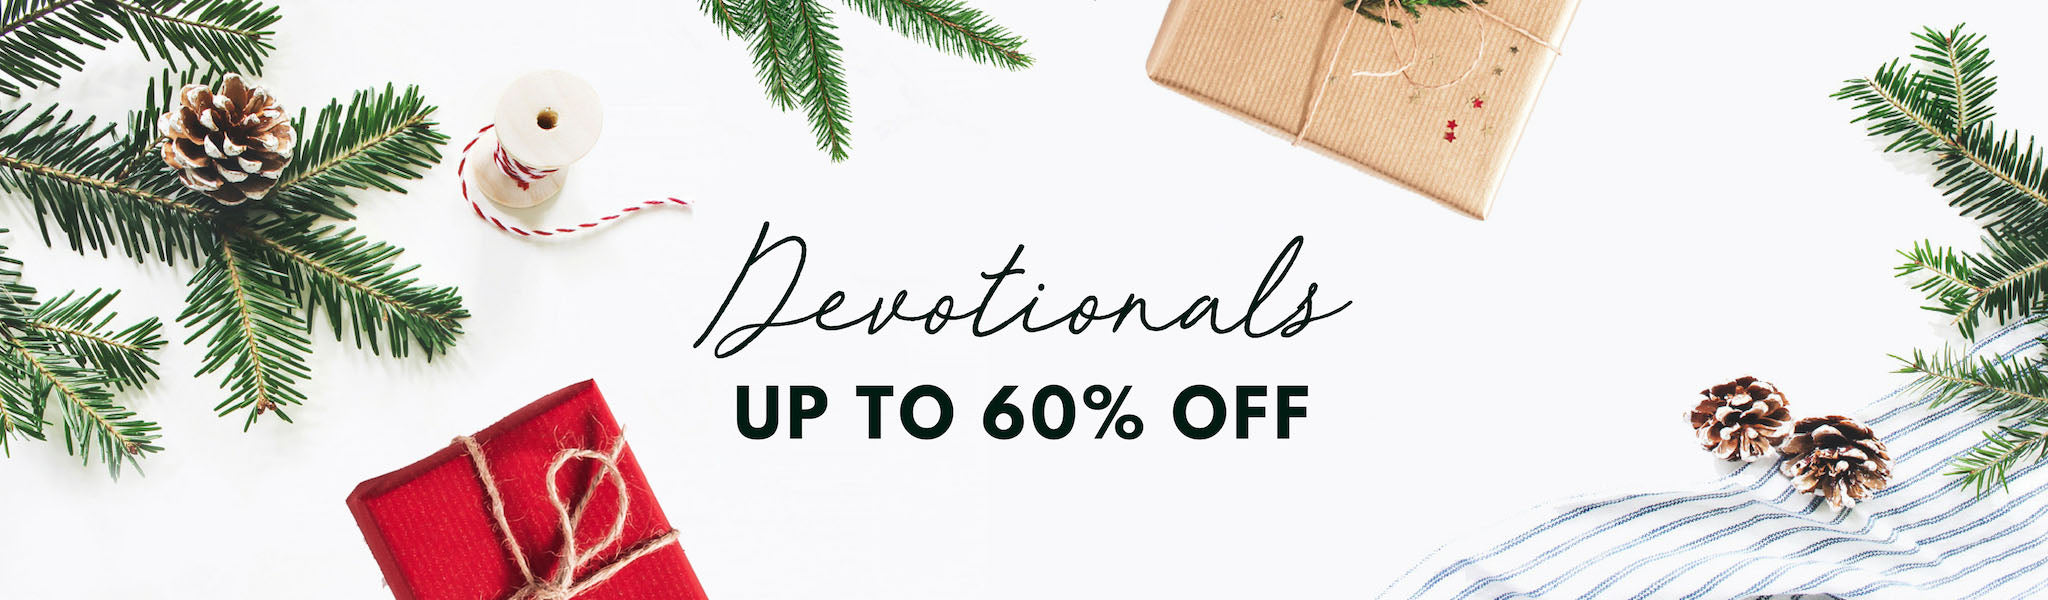 Black Friday Devotionals On Sale